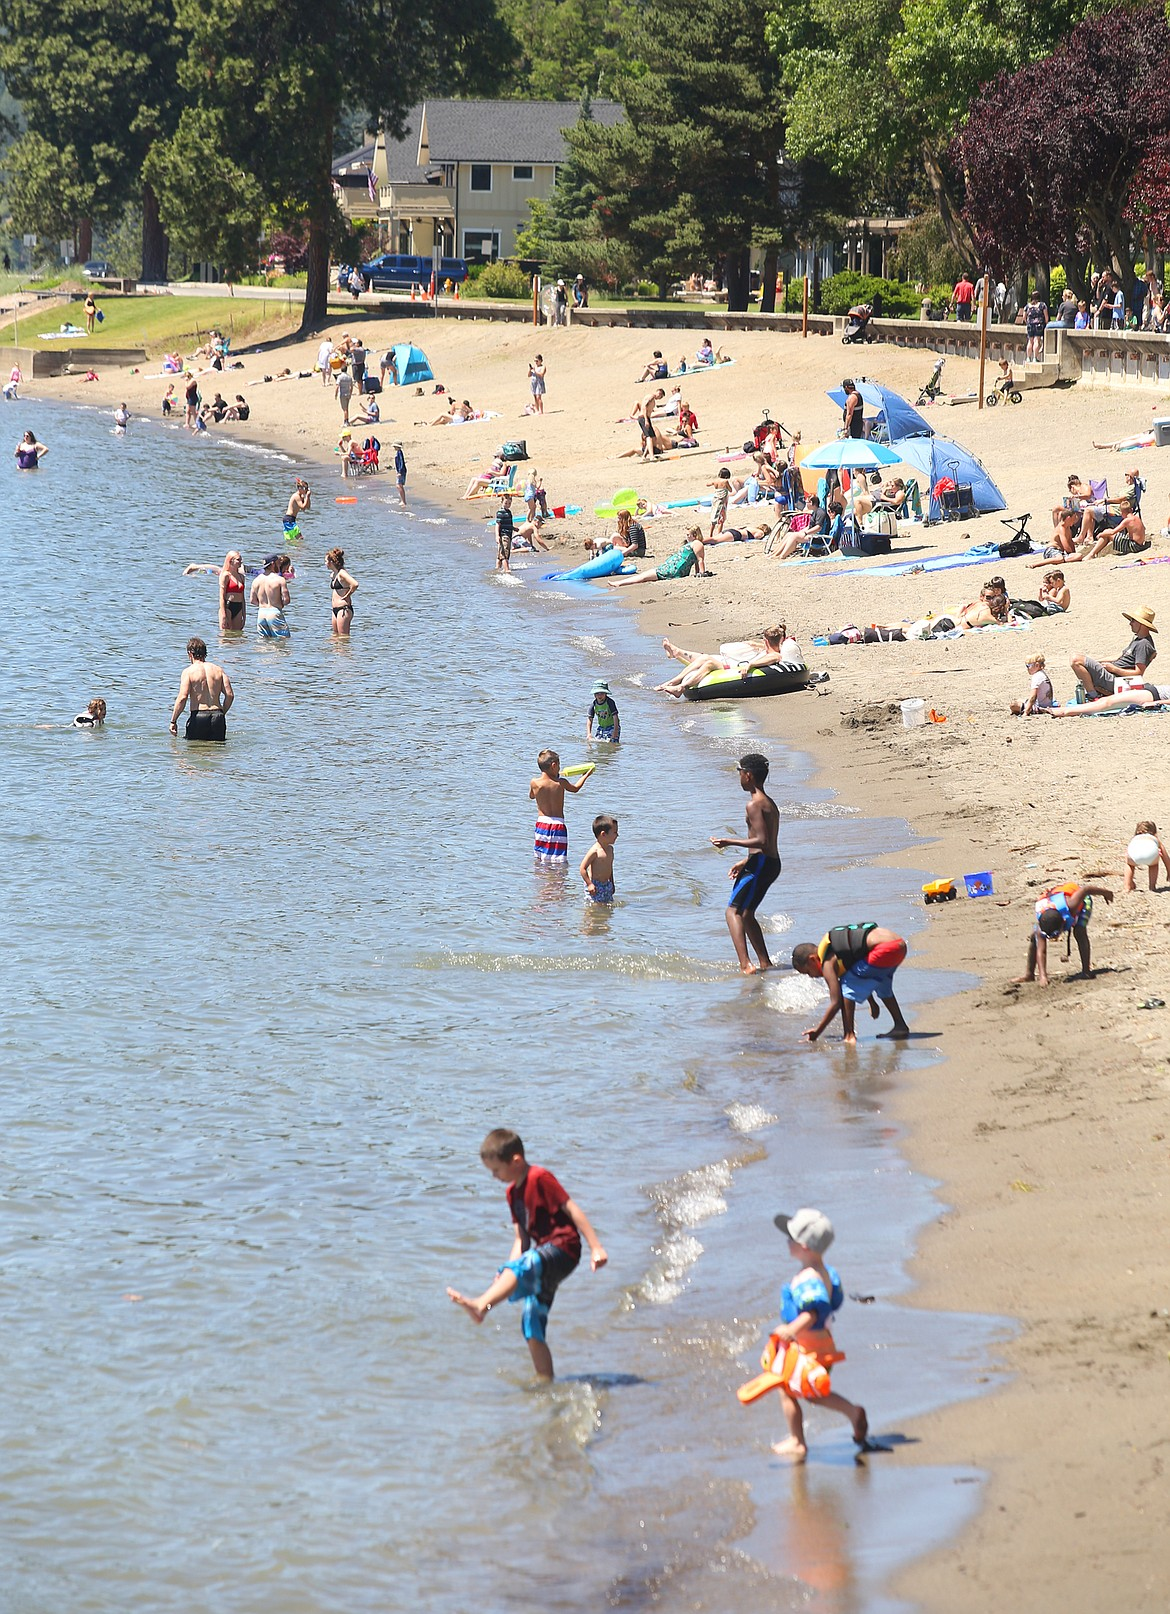 BILL BULEY/Press   City Beach is crowded on a sunny Monday morning.